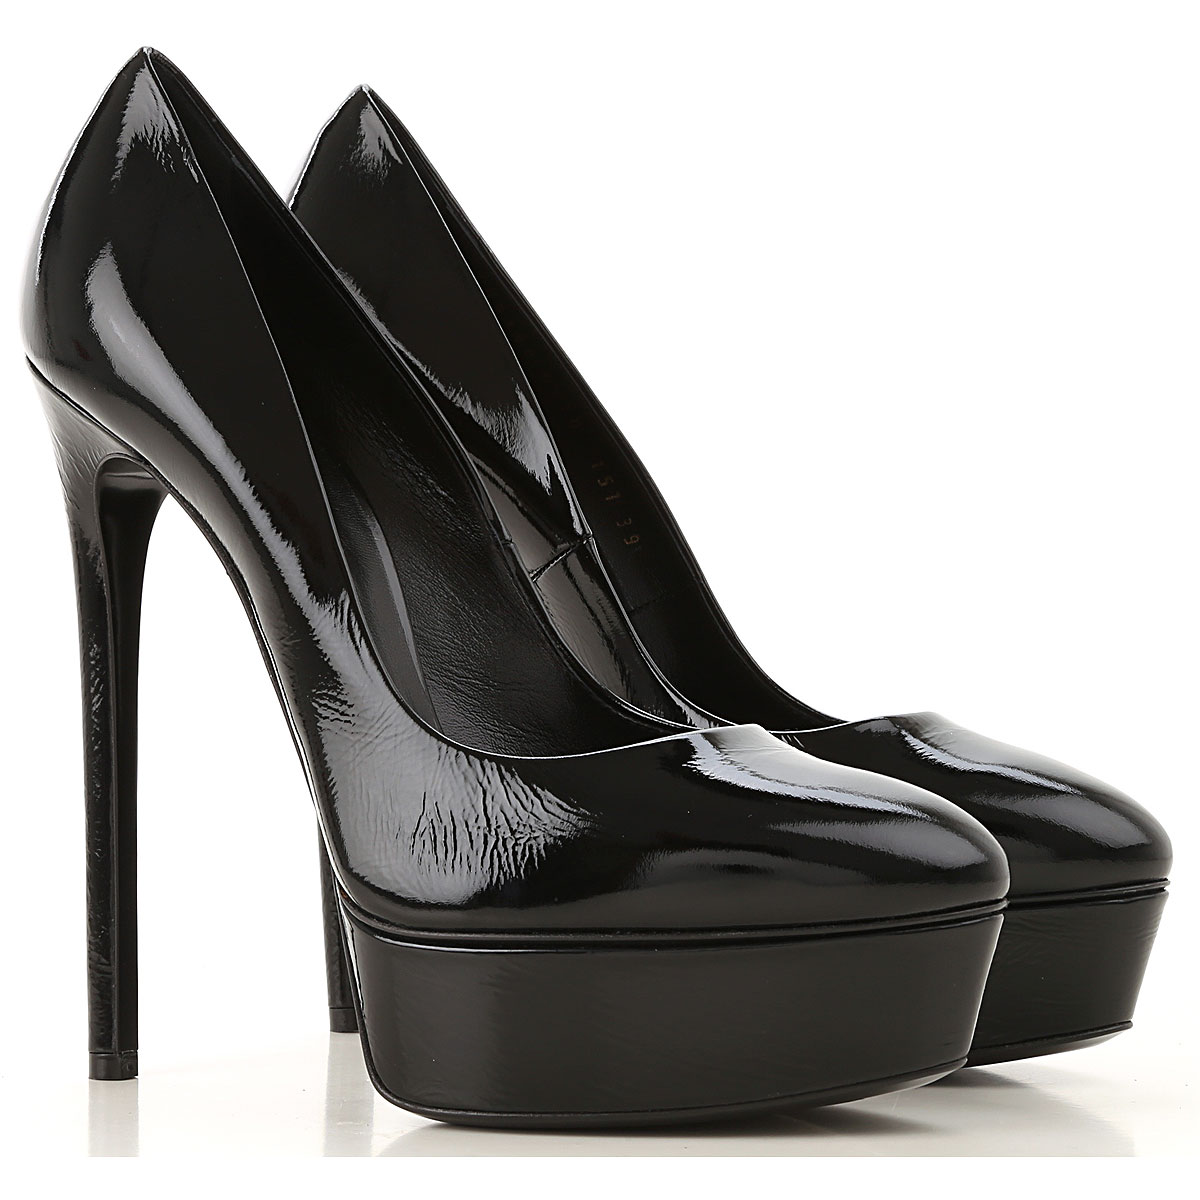 Casadei Pumps & High Heels for Women On Sale, Black, Patent Leather, 2019, 10 6 7 9